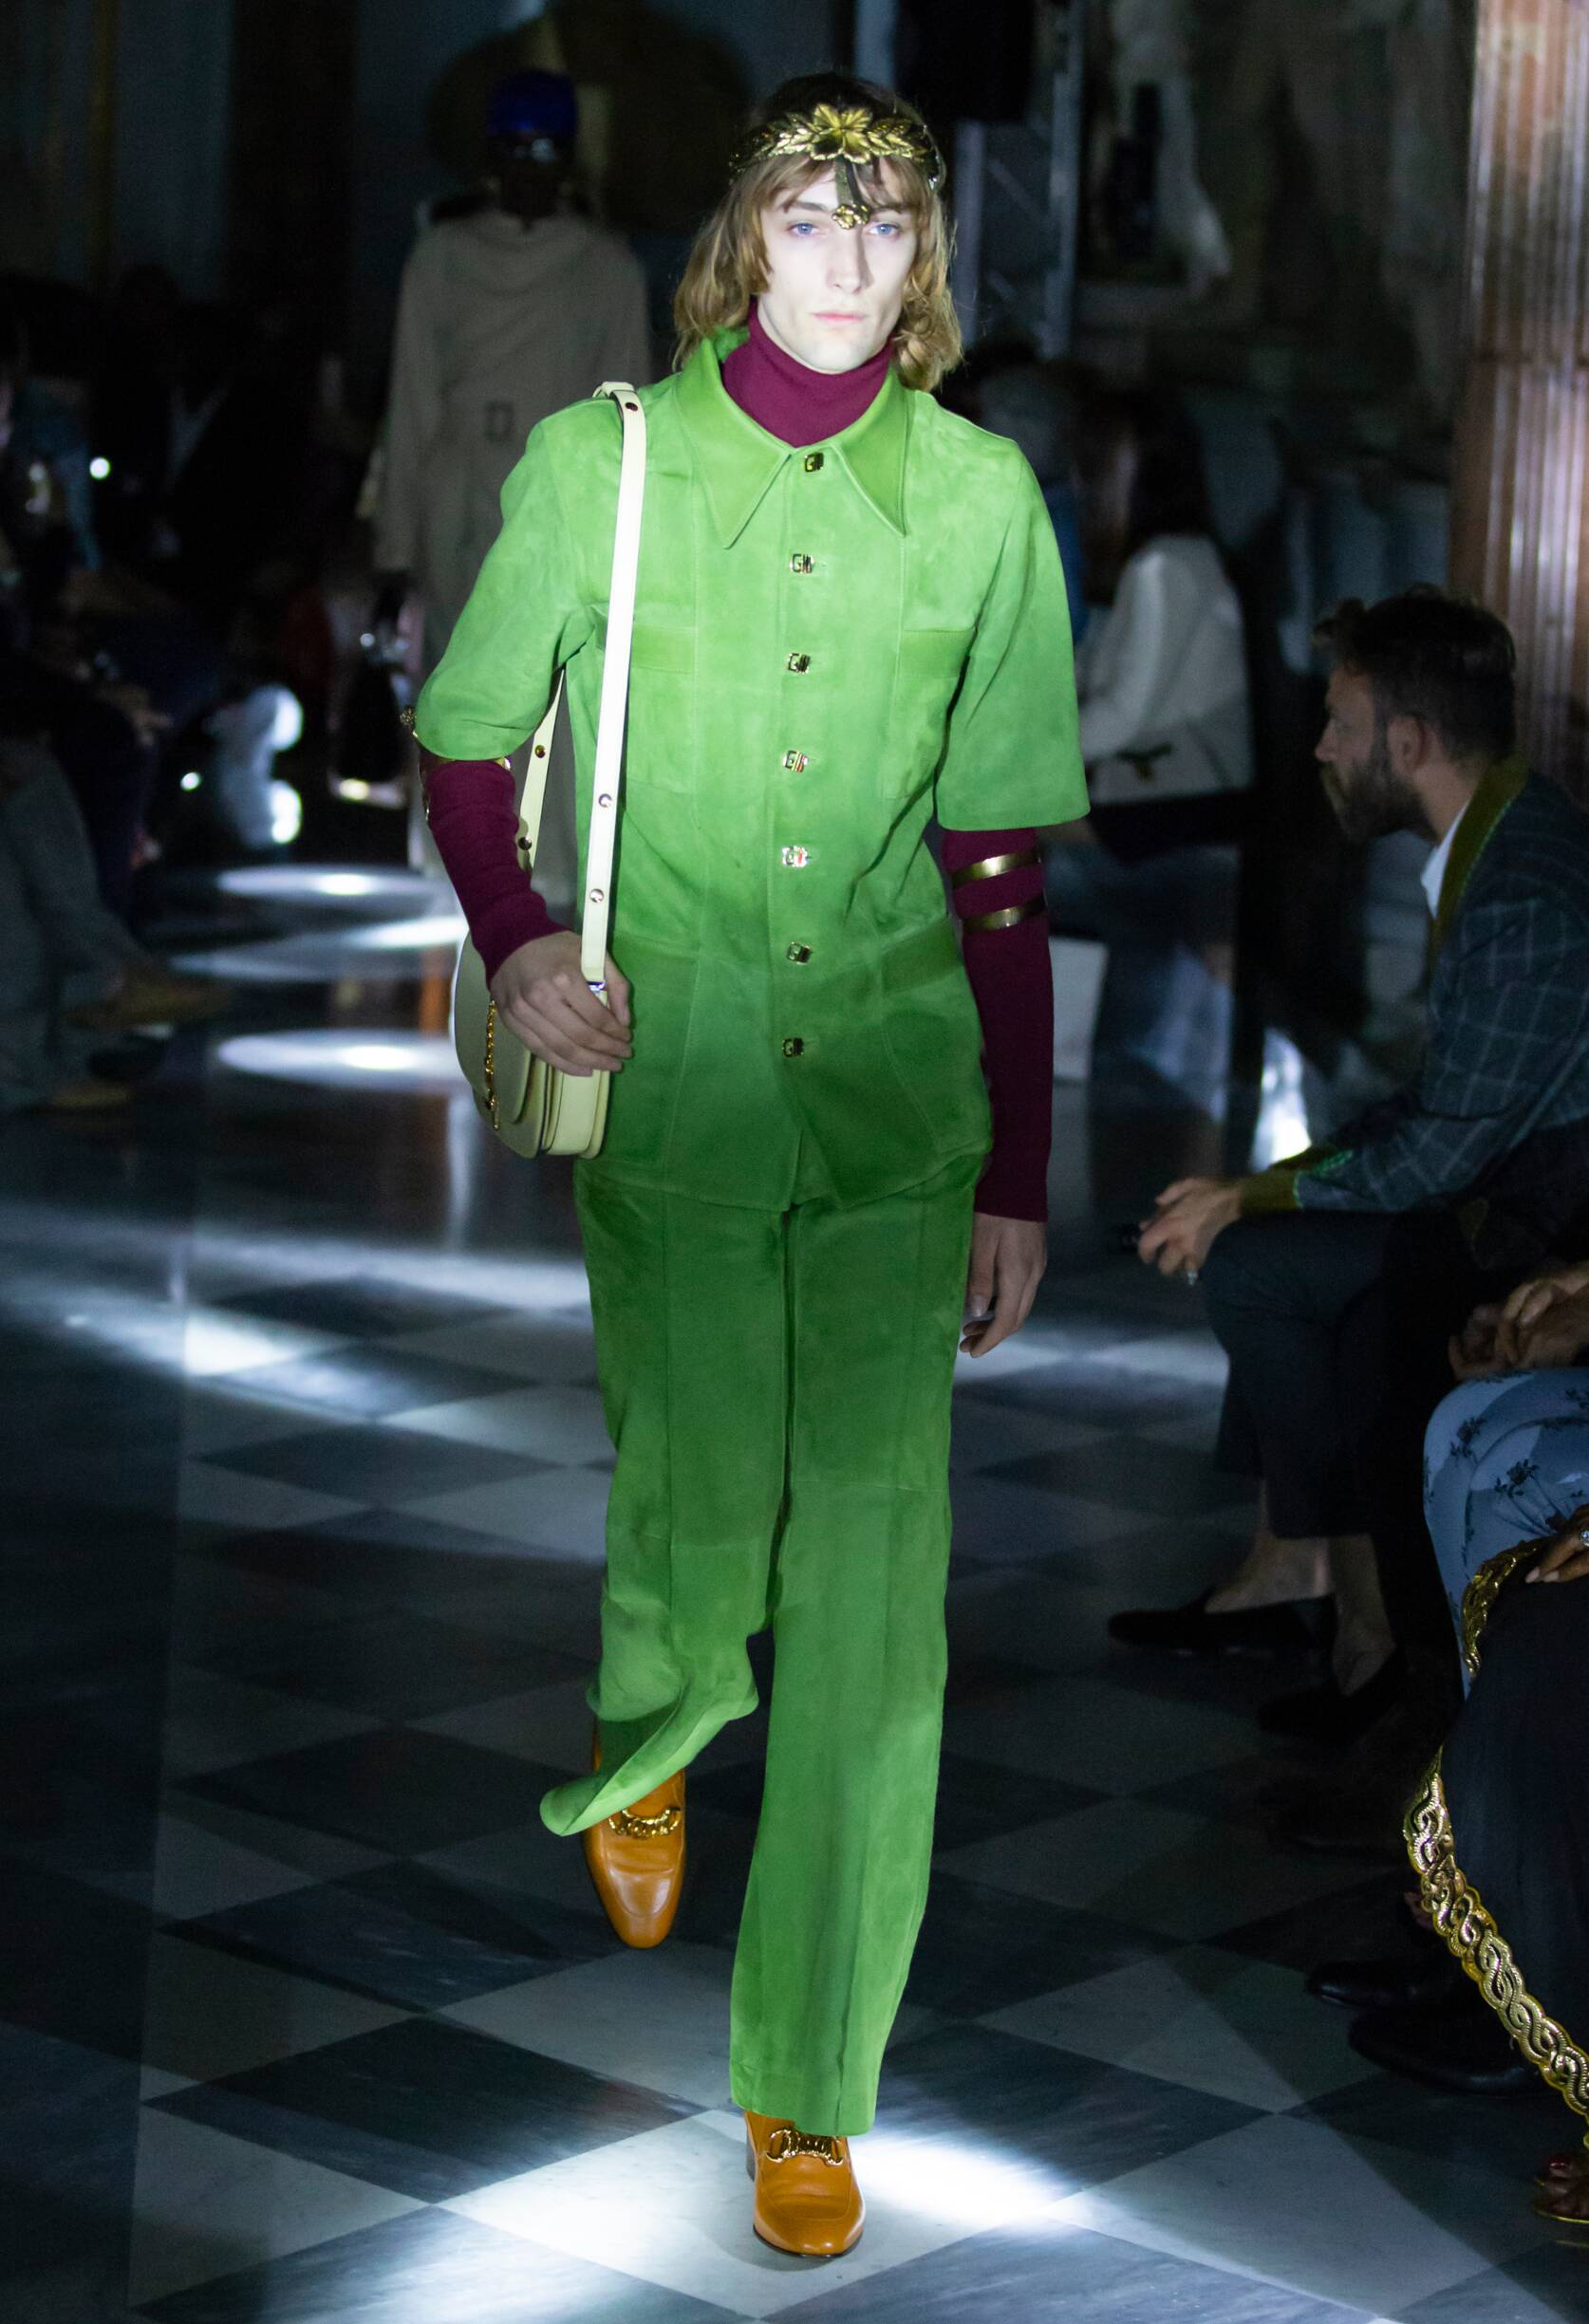 Gucci Cruise 2020 Collection Look 35 Rome